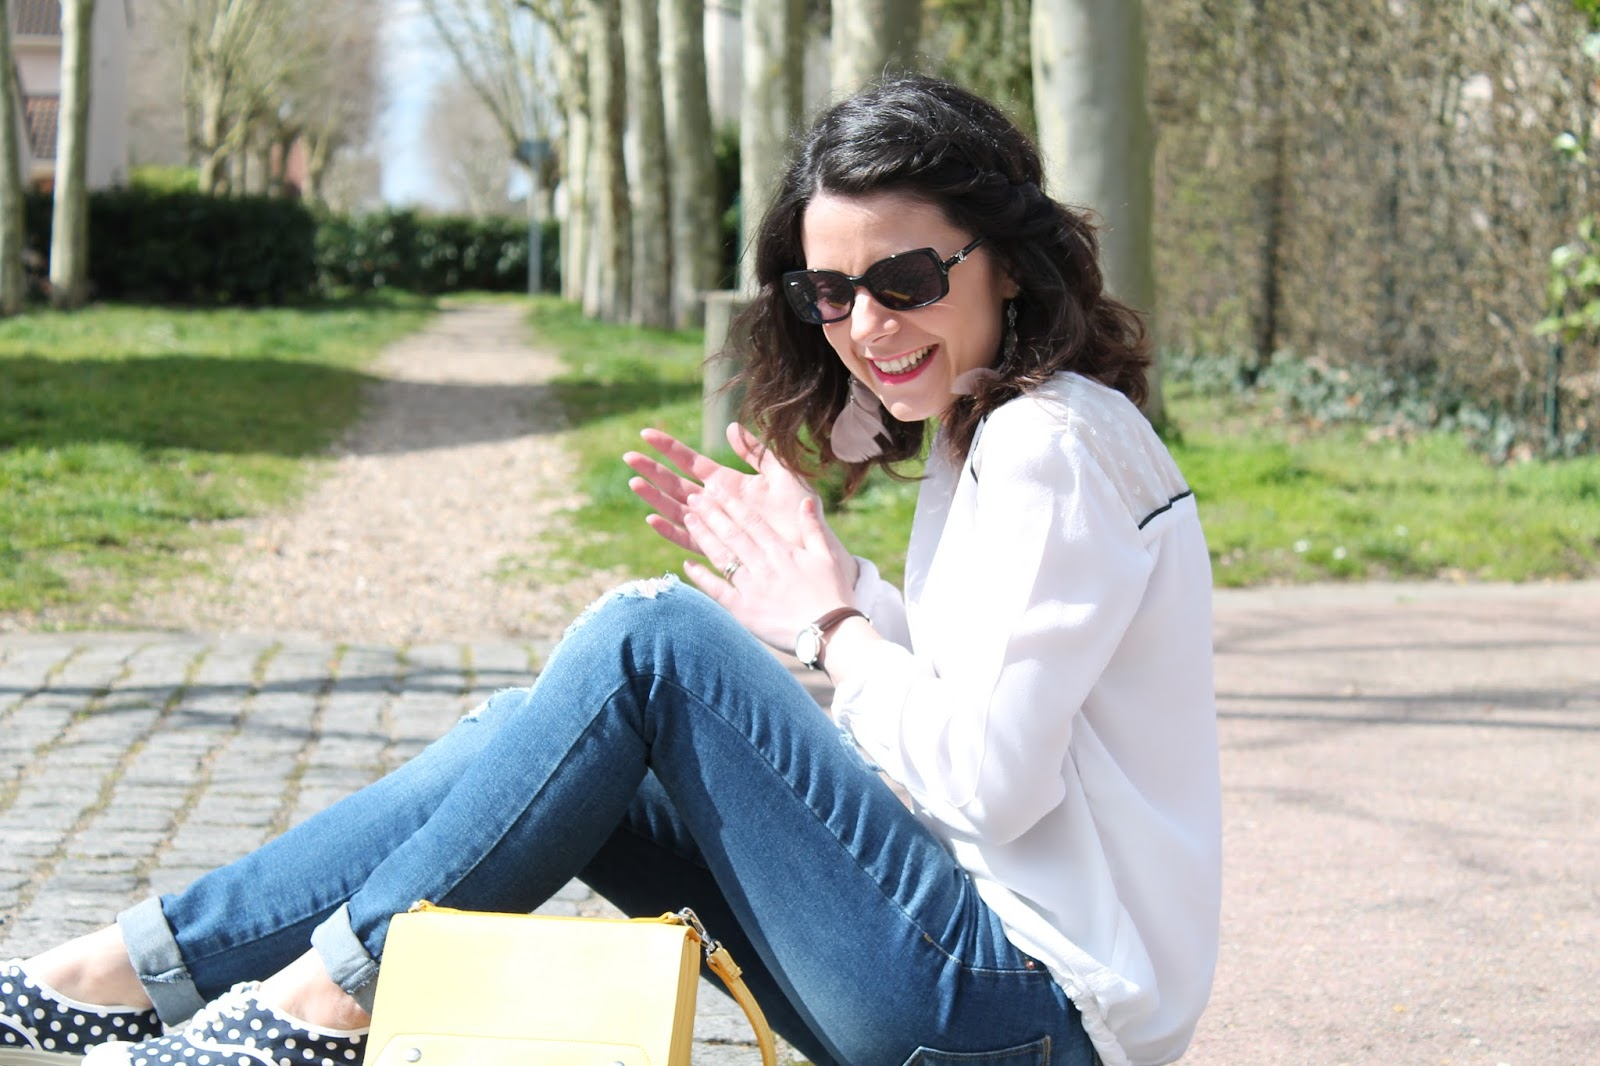 les gommettes de melo blog blogueuse 2017 blogspot blogger french youtube youtubeuse vidéo look lookbook tenue outfit of the day ootd shooting mode fashion zara etam kiabi bensimon